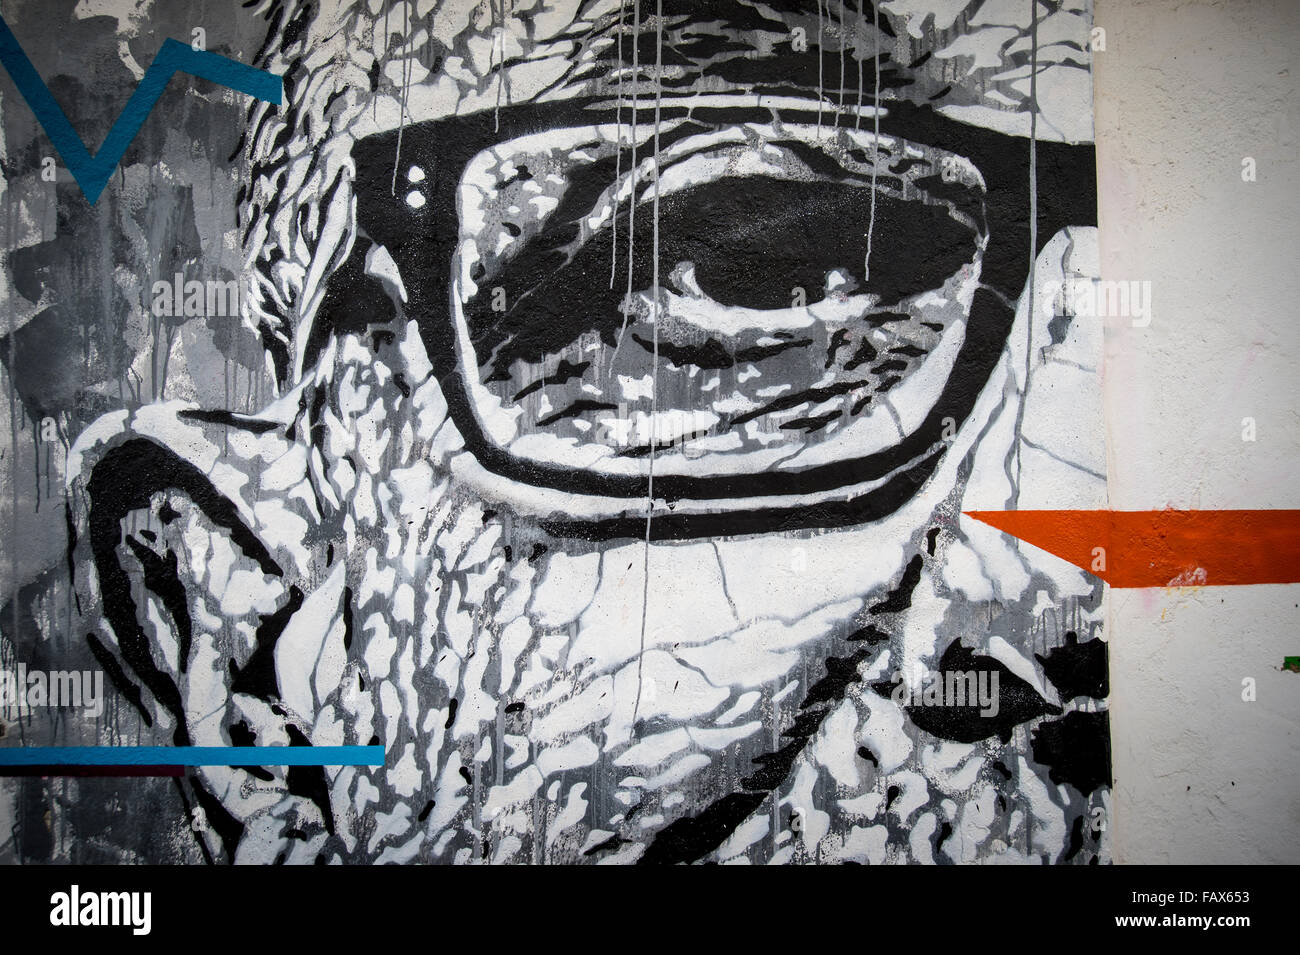 graffiti of a mans face painted on the wall of an abandoned building in Lagos Portugal. - Stock Image